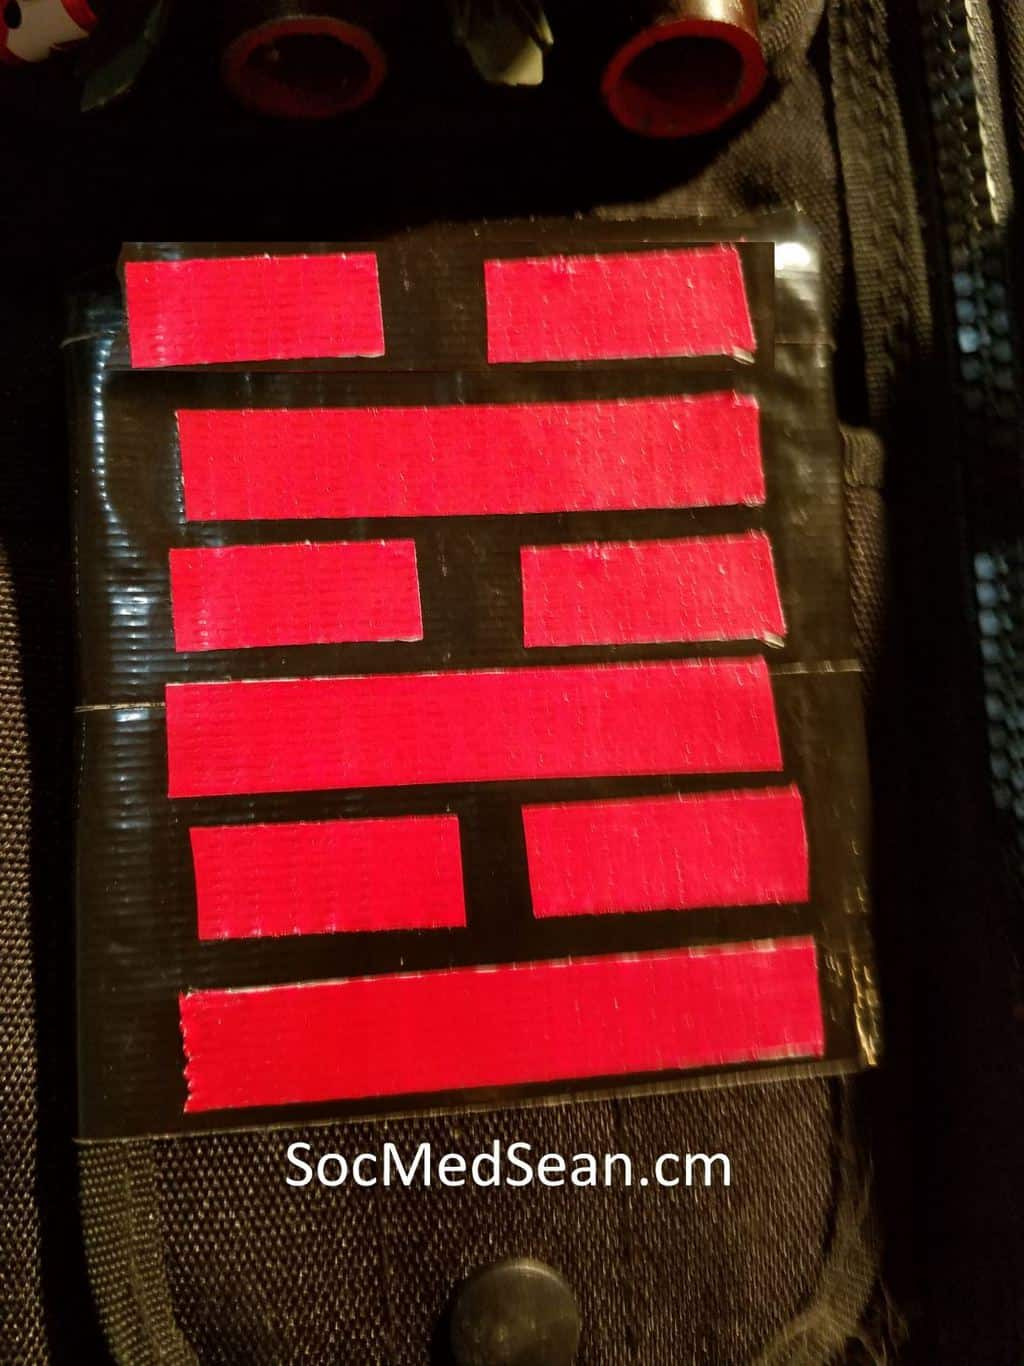 The Arashikage clan insignia for my Snake Eyes cosplay costume